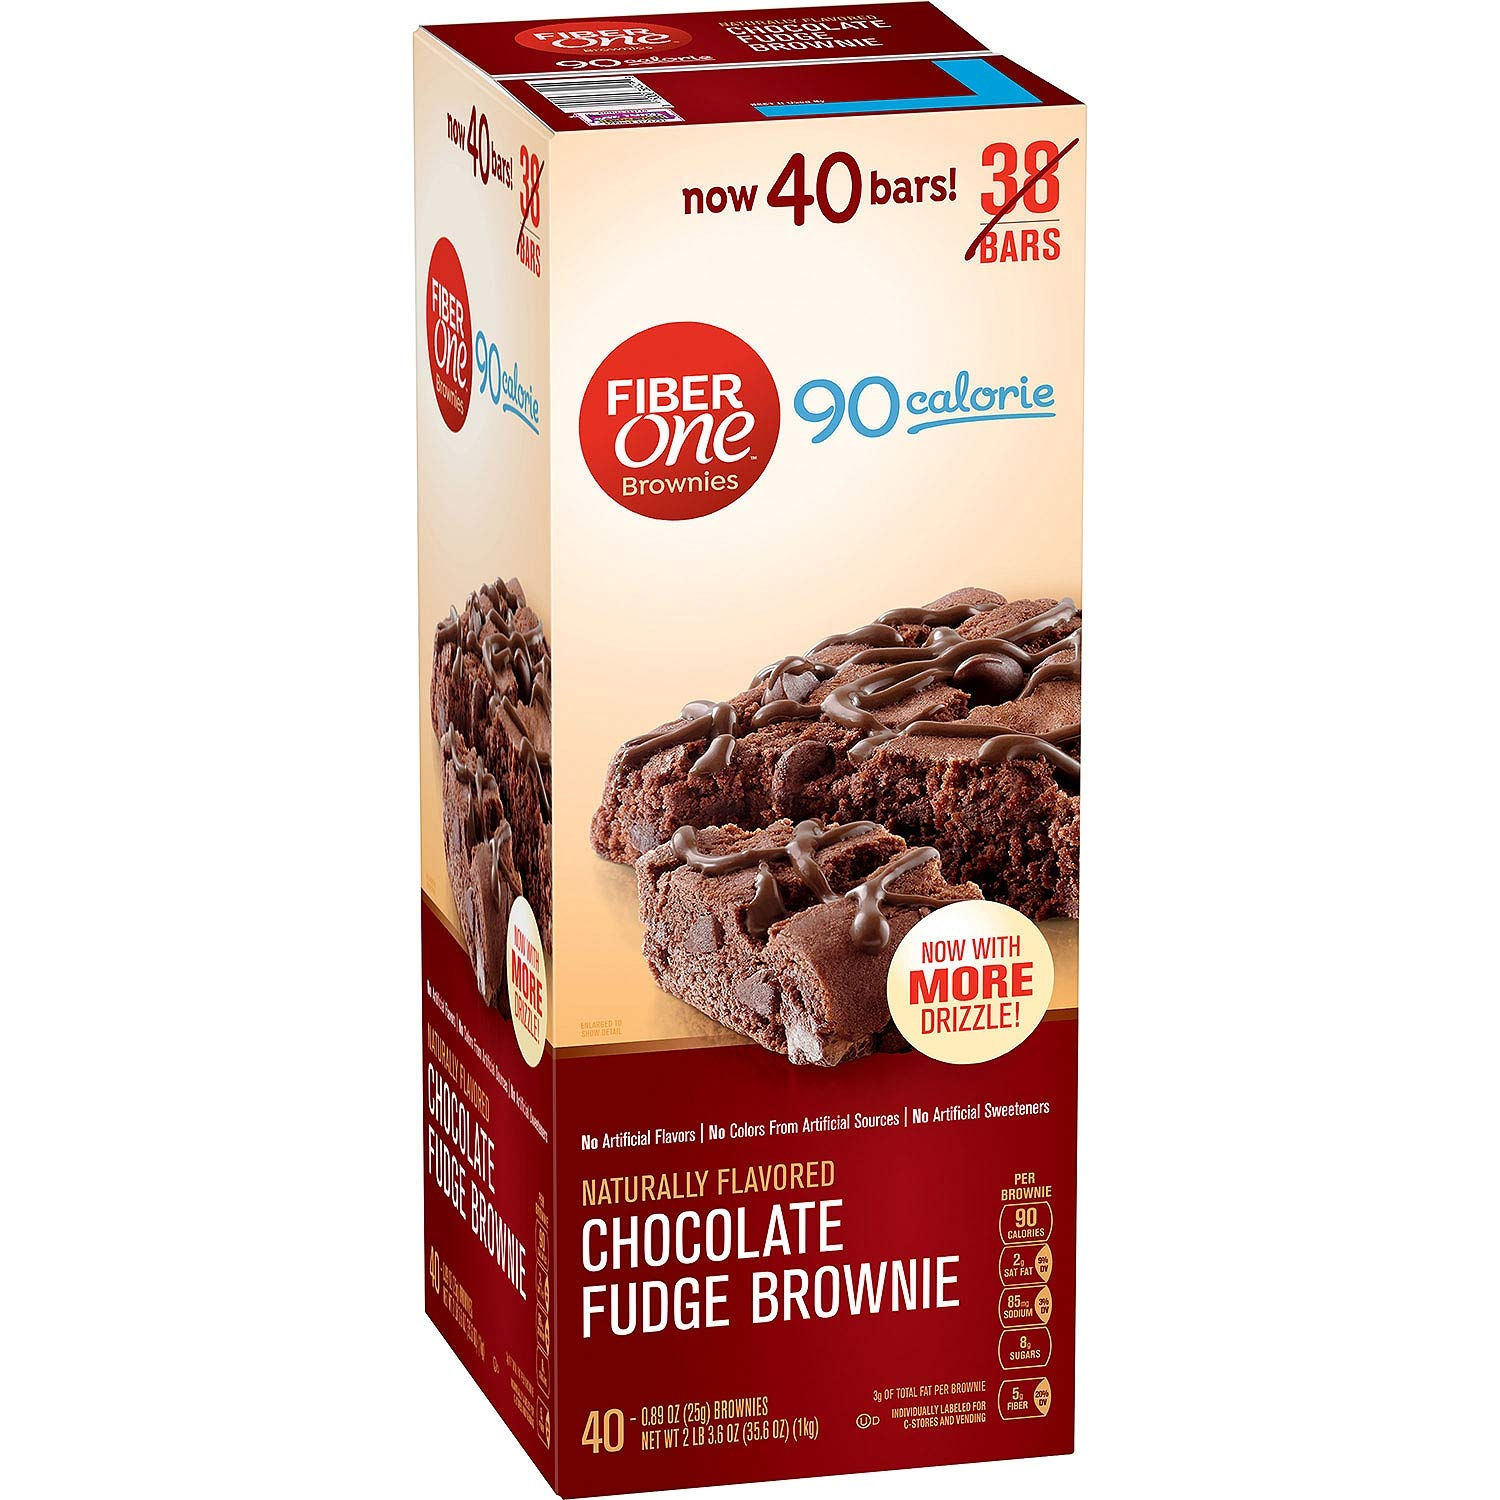 Fiber One Brownies Chocolate Fudge (Single)